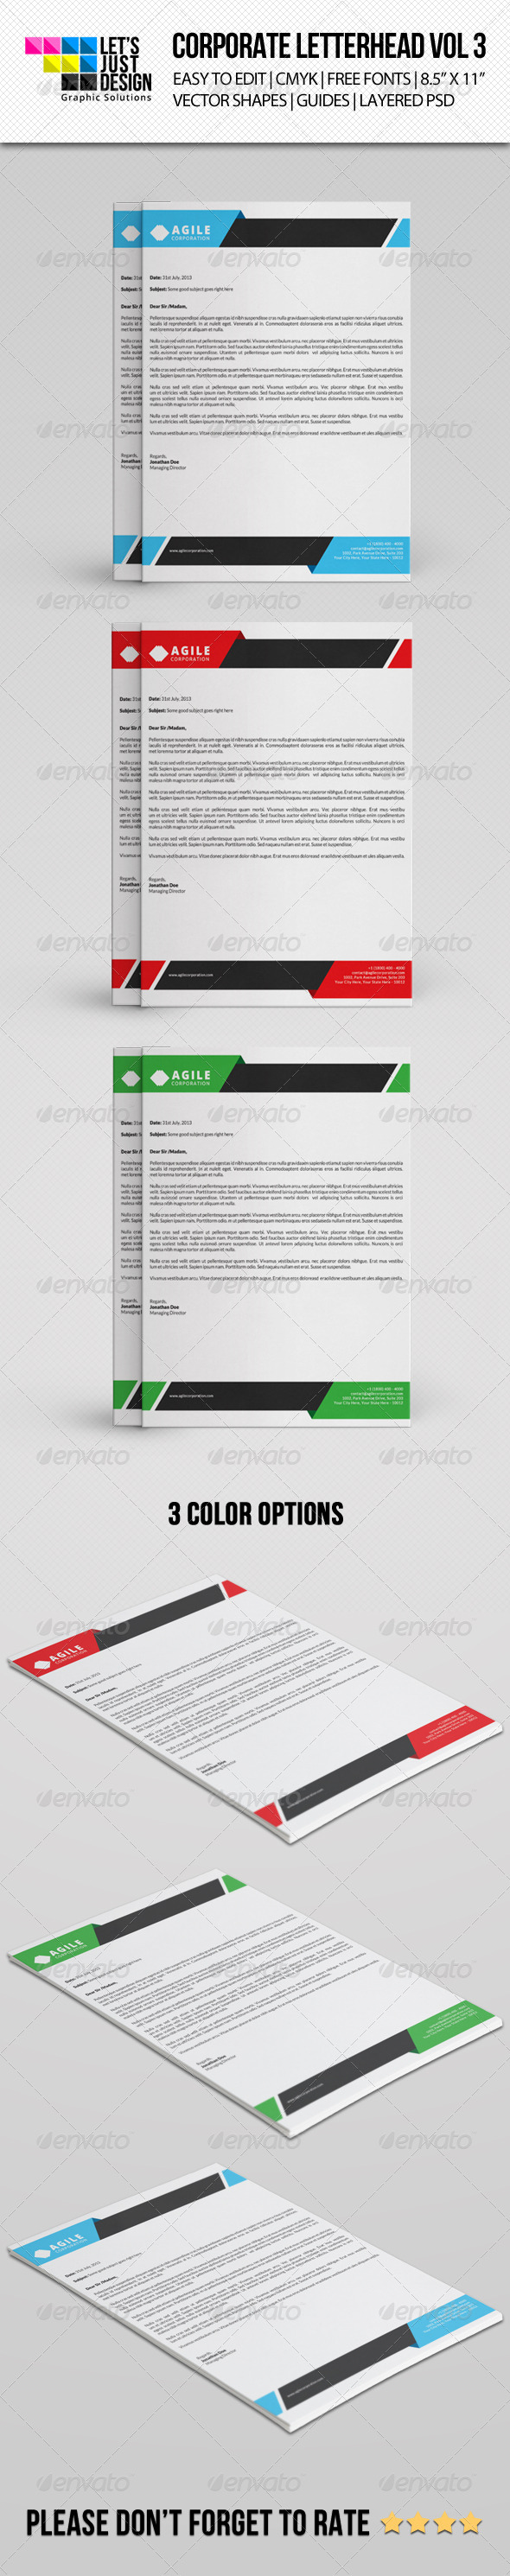 GraphicRiver Corporate Letterhead Vol 3 8285924